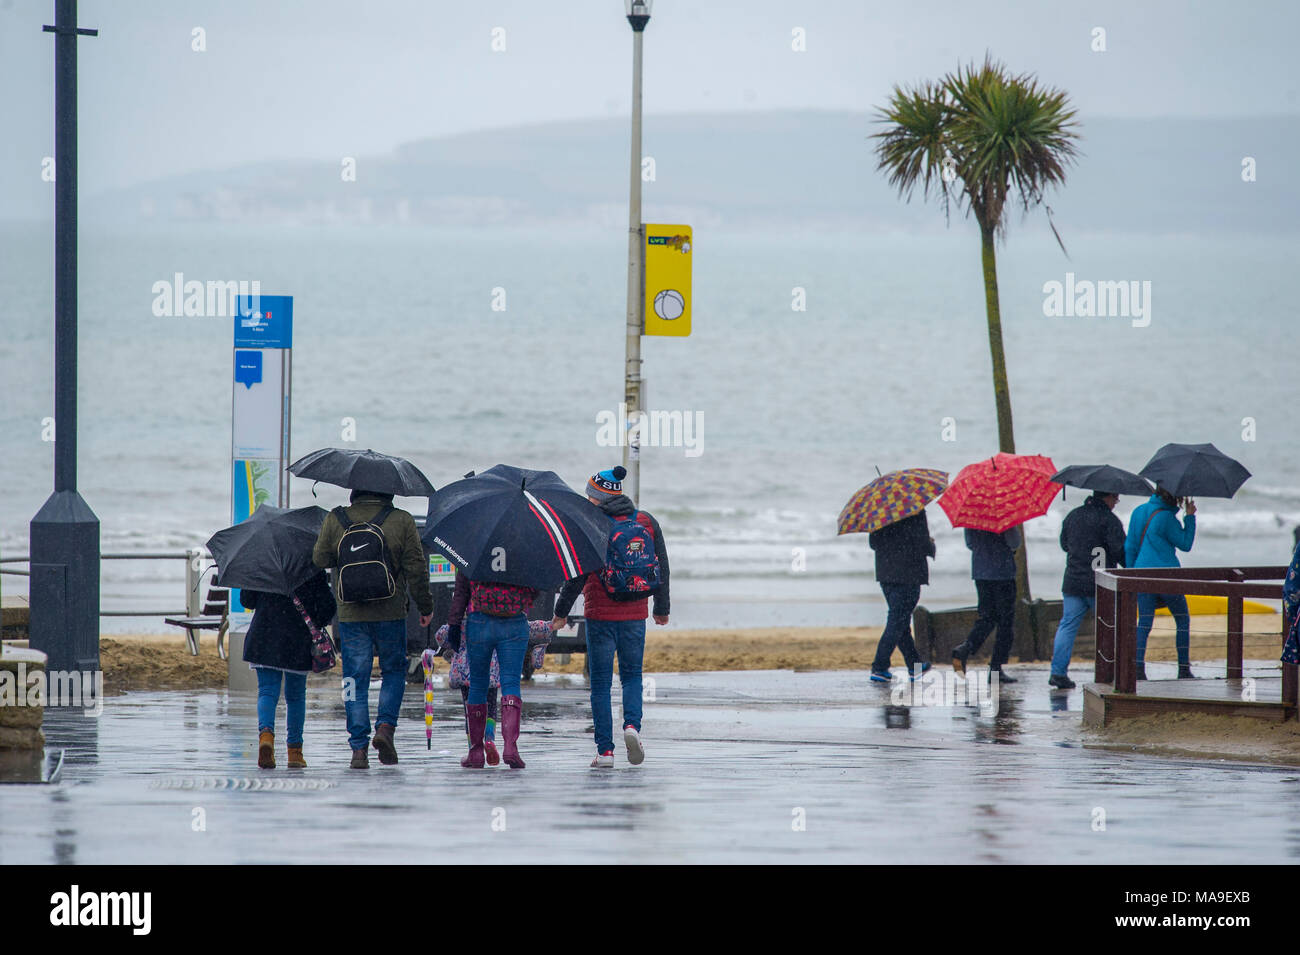 Bournemouth, UK, 30 March 2018. A wet start to the Easter Weekend at Bournemouth beach as rain continues on the South Coast of Englandon Good Friday. Credit John Beasley/Alamy Live News - Stock Image